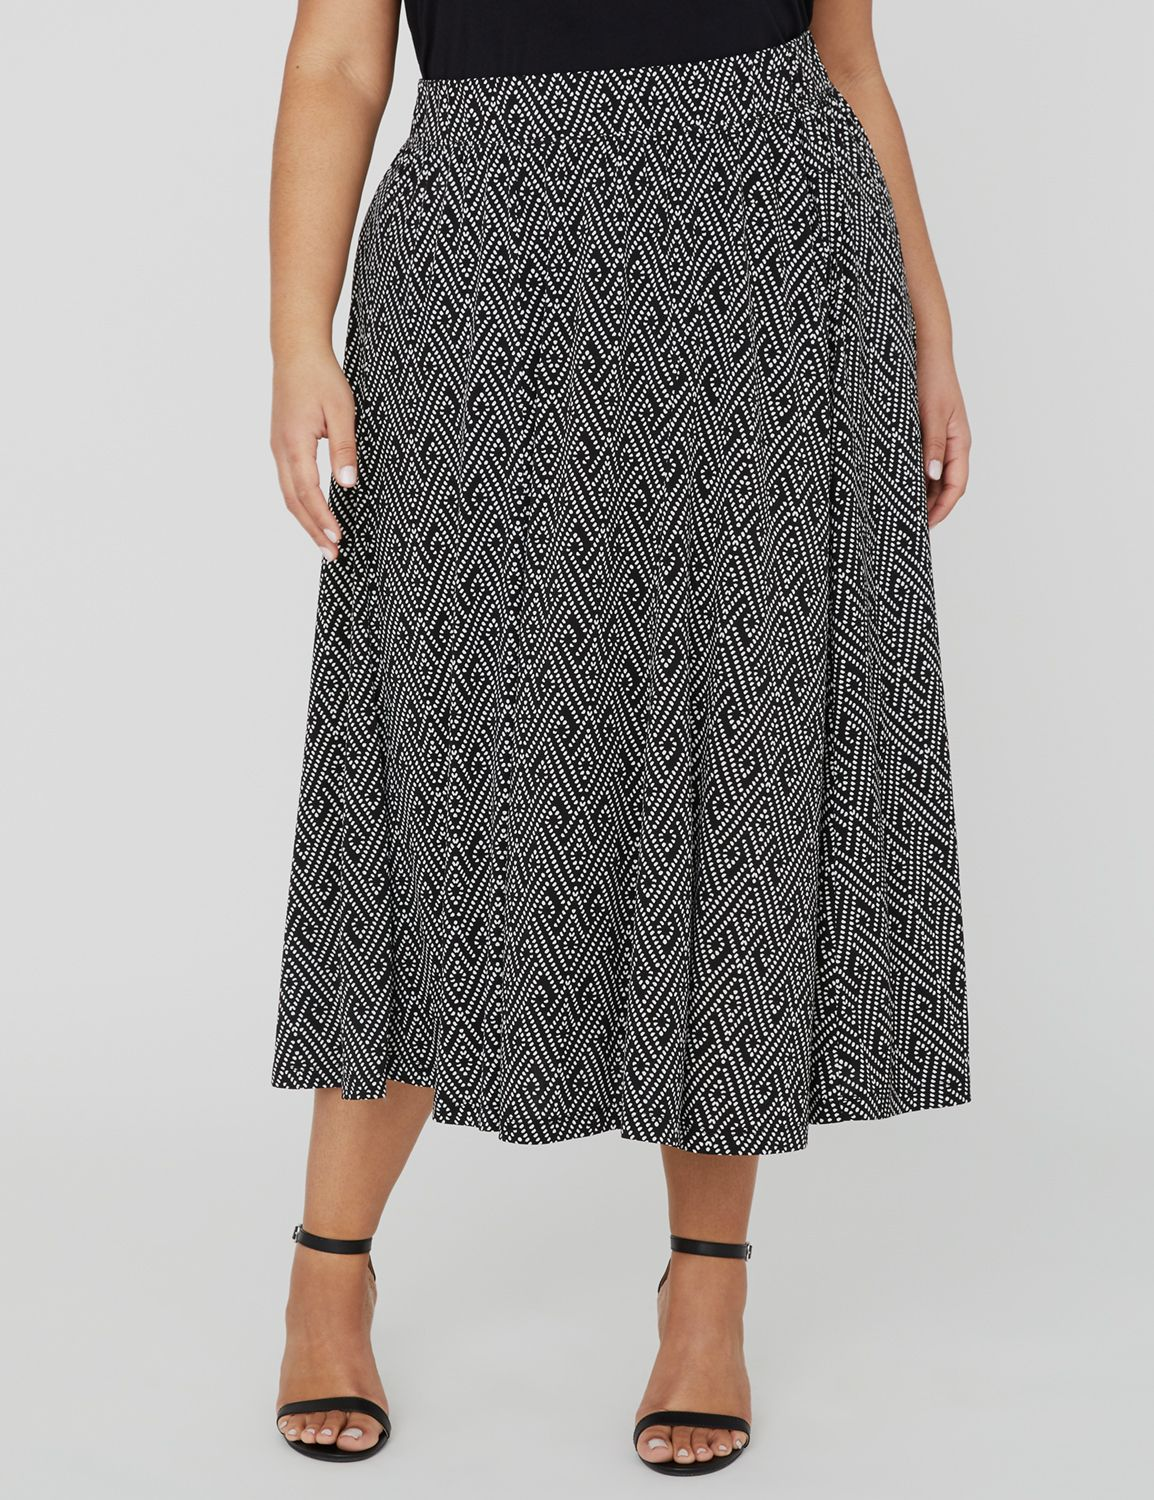 AnyWear Daydream Midi Skirt 1088564 Anywear ITY Printed Midi Sk MP-300104830